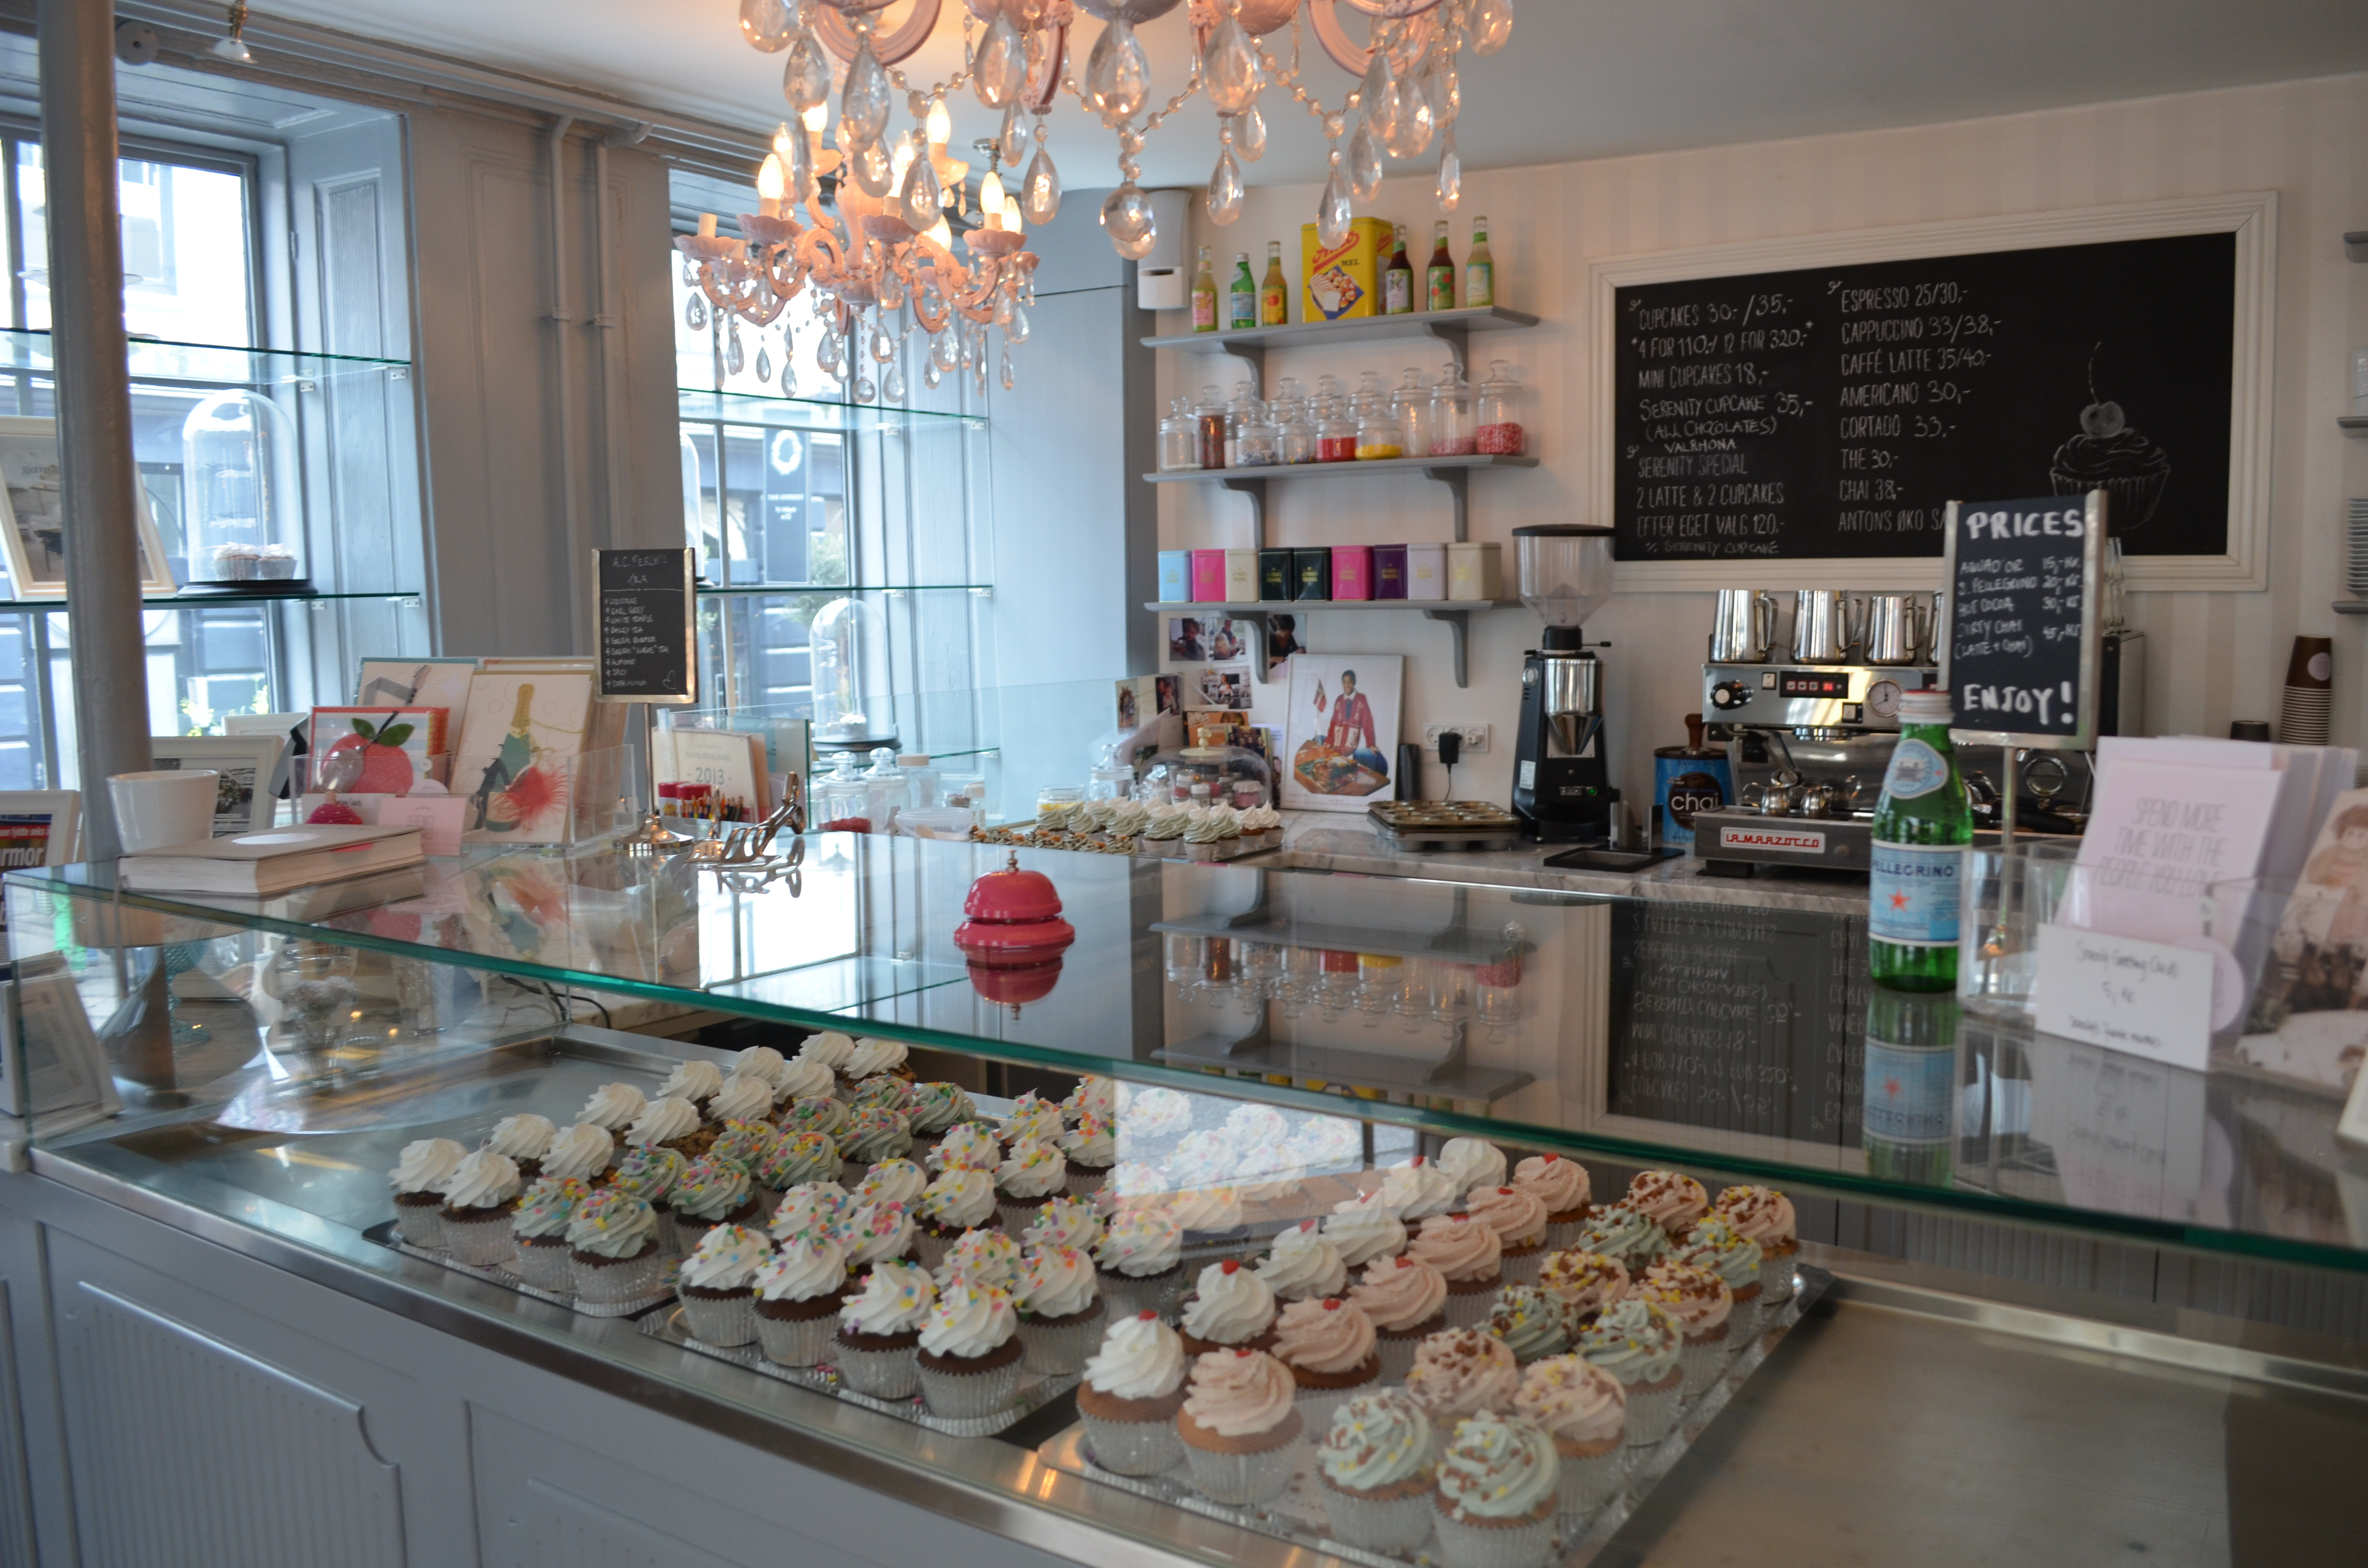 cupcake shop Are you ready there's' no time for daydreaming, for cute tiny customers will come flooding into your shop any time now looking for the yummiest cupcakes be ready to attend to them all and make their sweets fantasies come true.